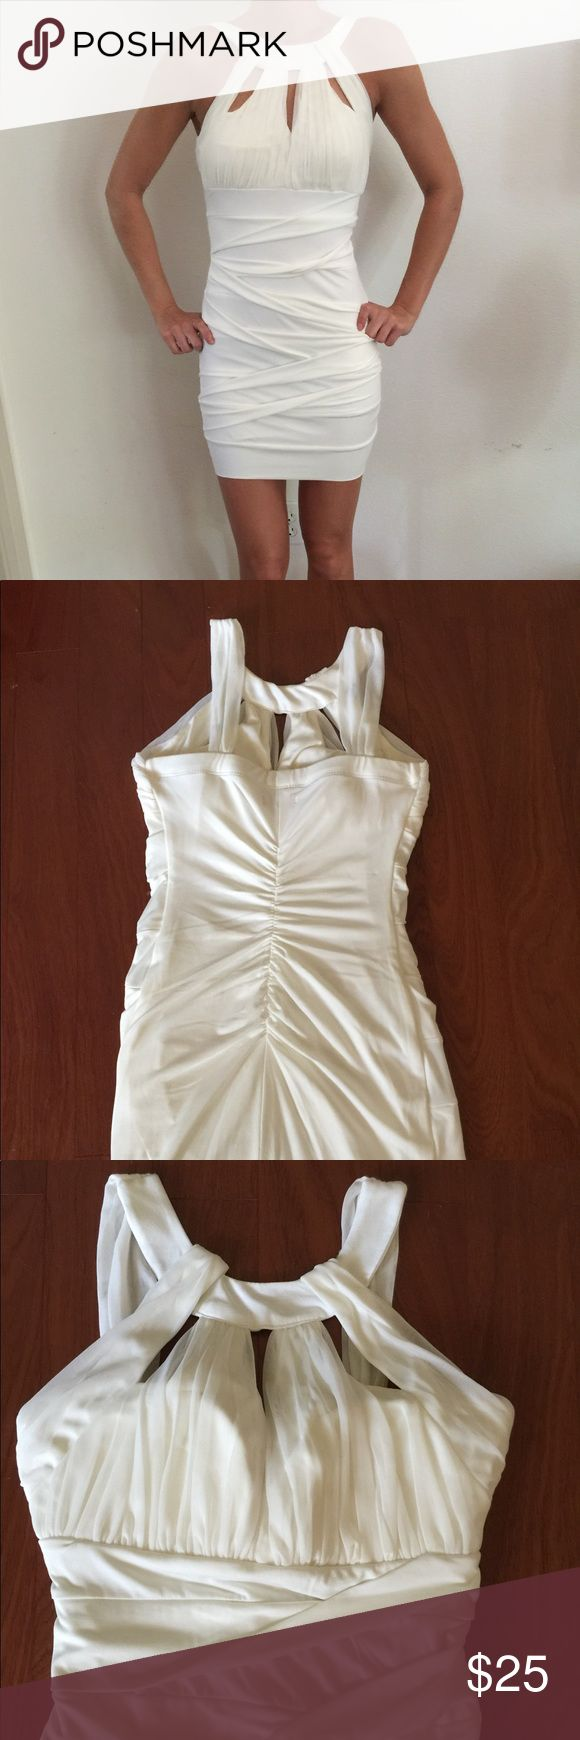 Body central size small dress white dress Body central size small white/off white dress. Stretchy material. Super cute for a bride! Body Central Dresses Mini